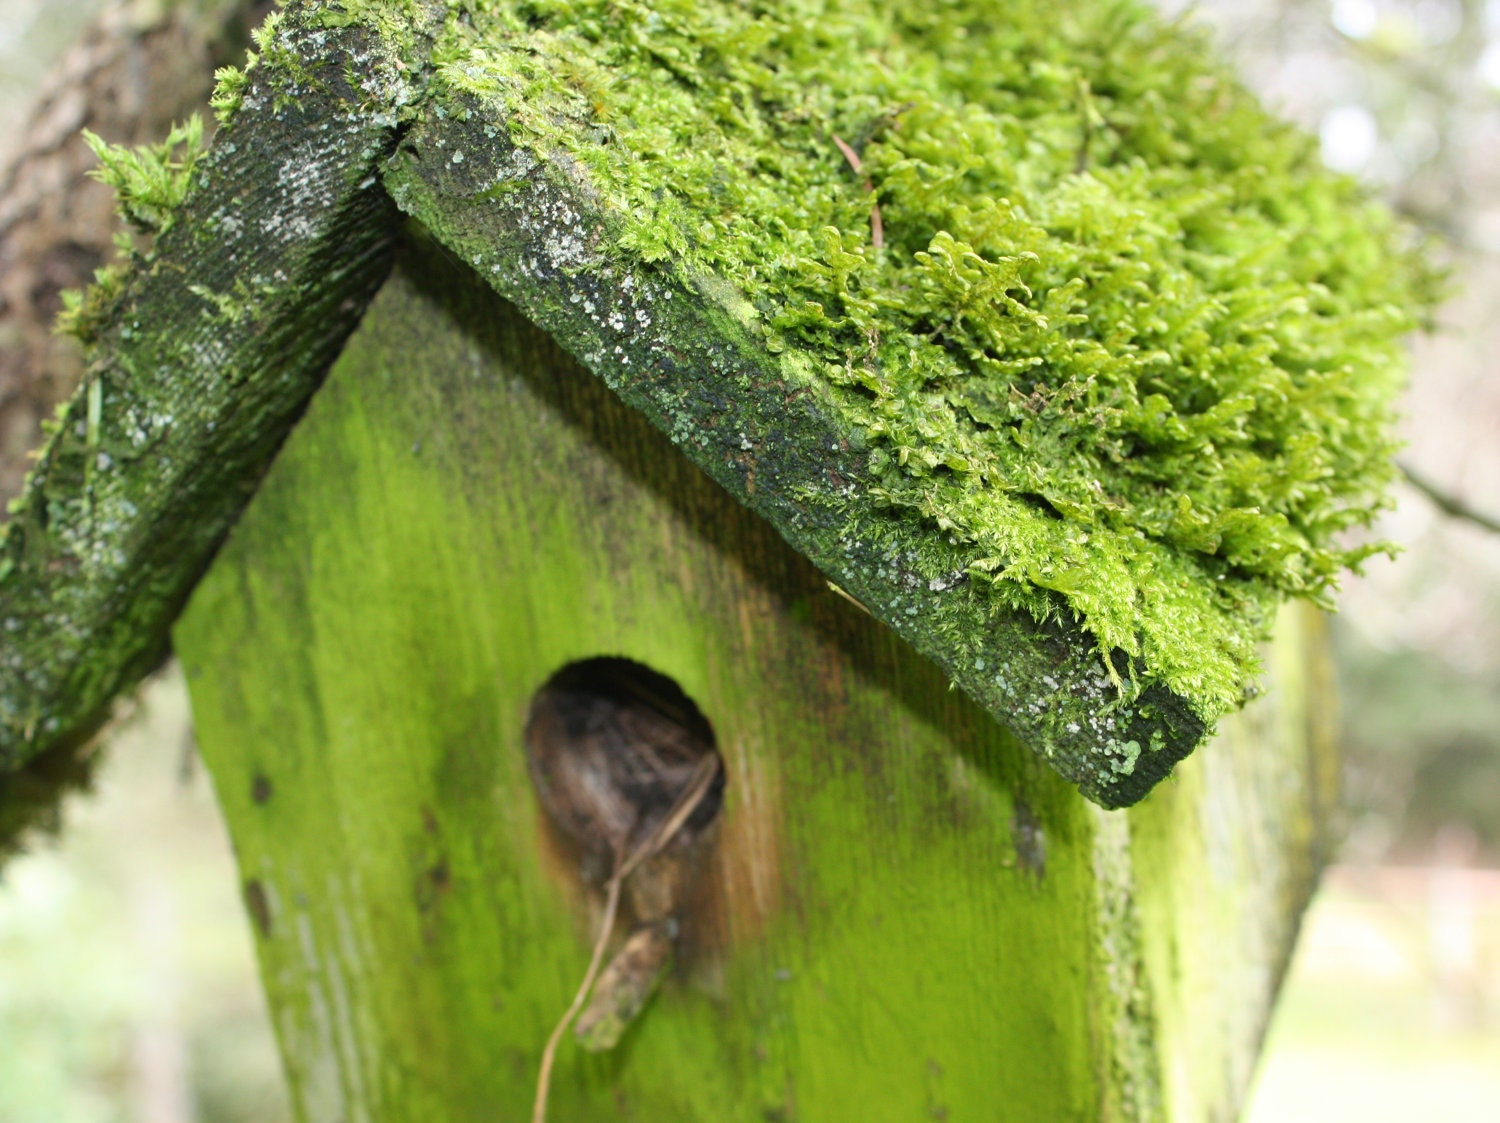 Bird House Photograph, Bright Green Moss, 8x10 Photograph / Home Decor - SandraLynns